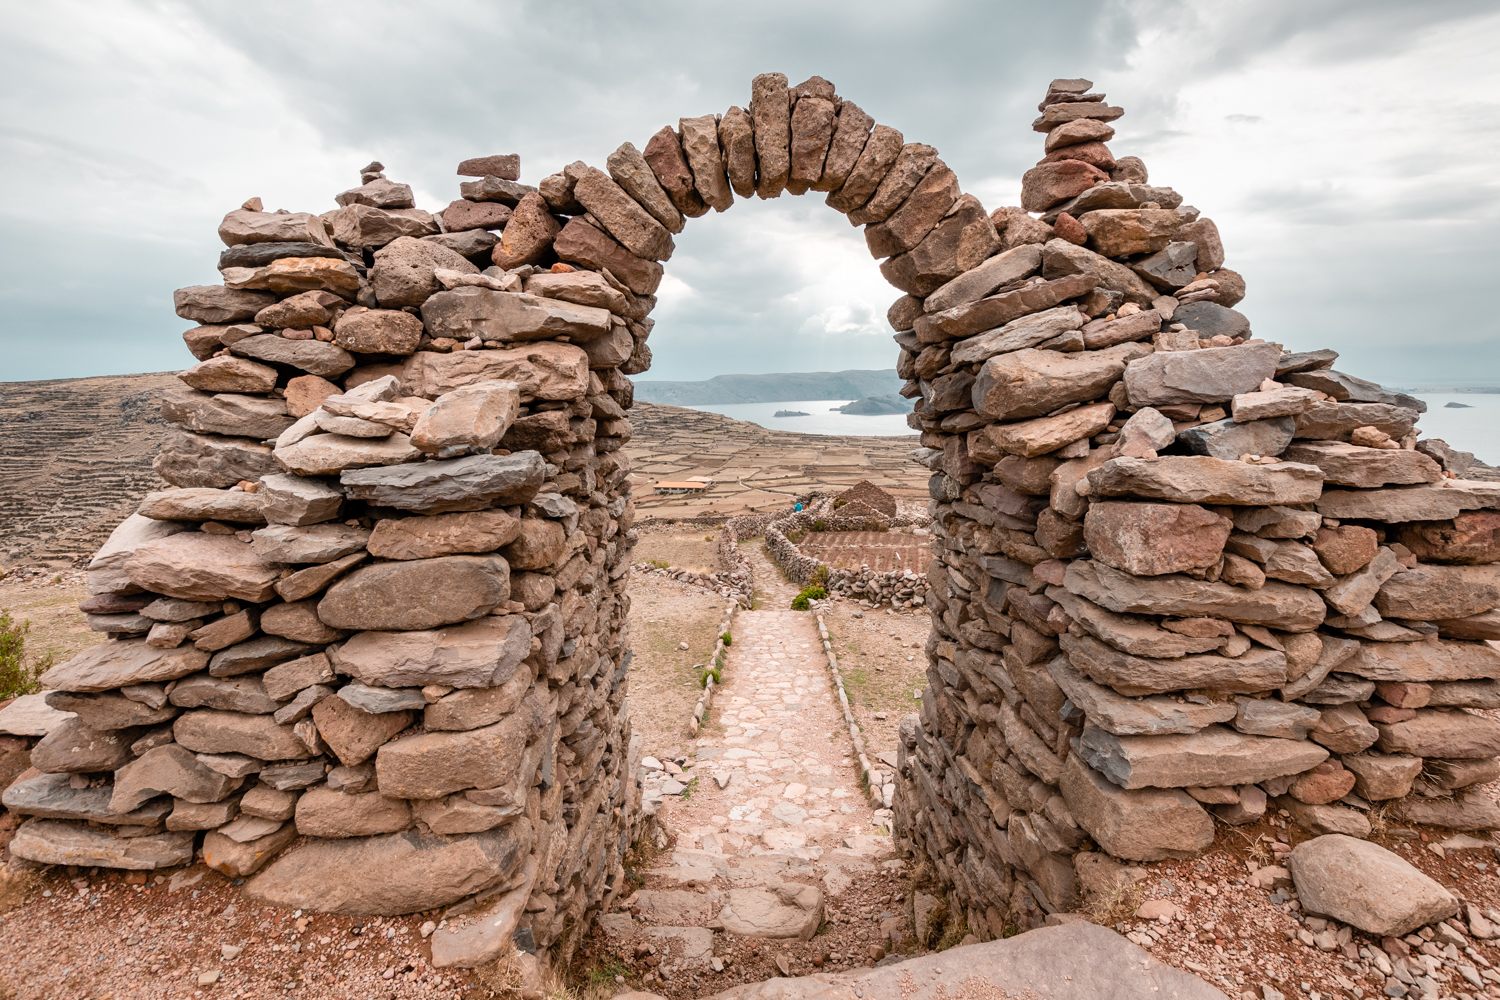 The gate at the ruins of  Pachatata  - Father Earth - over 4100 mt (13,450 feet) on sea level.